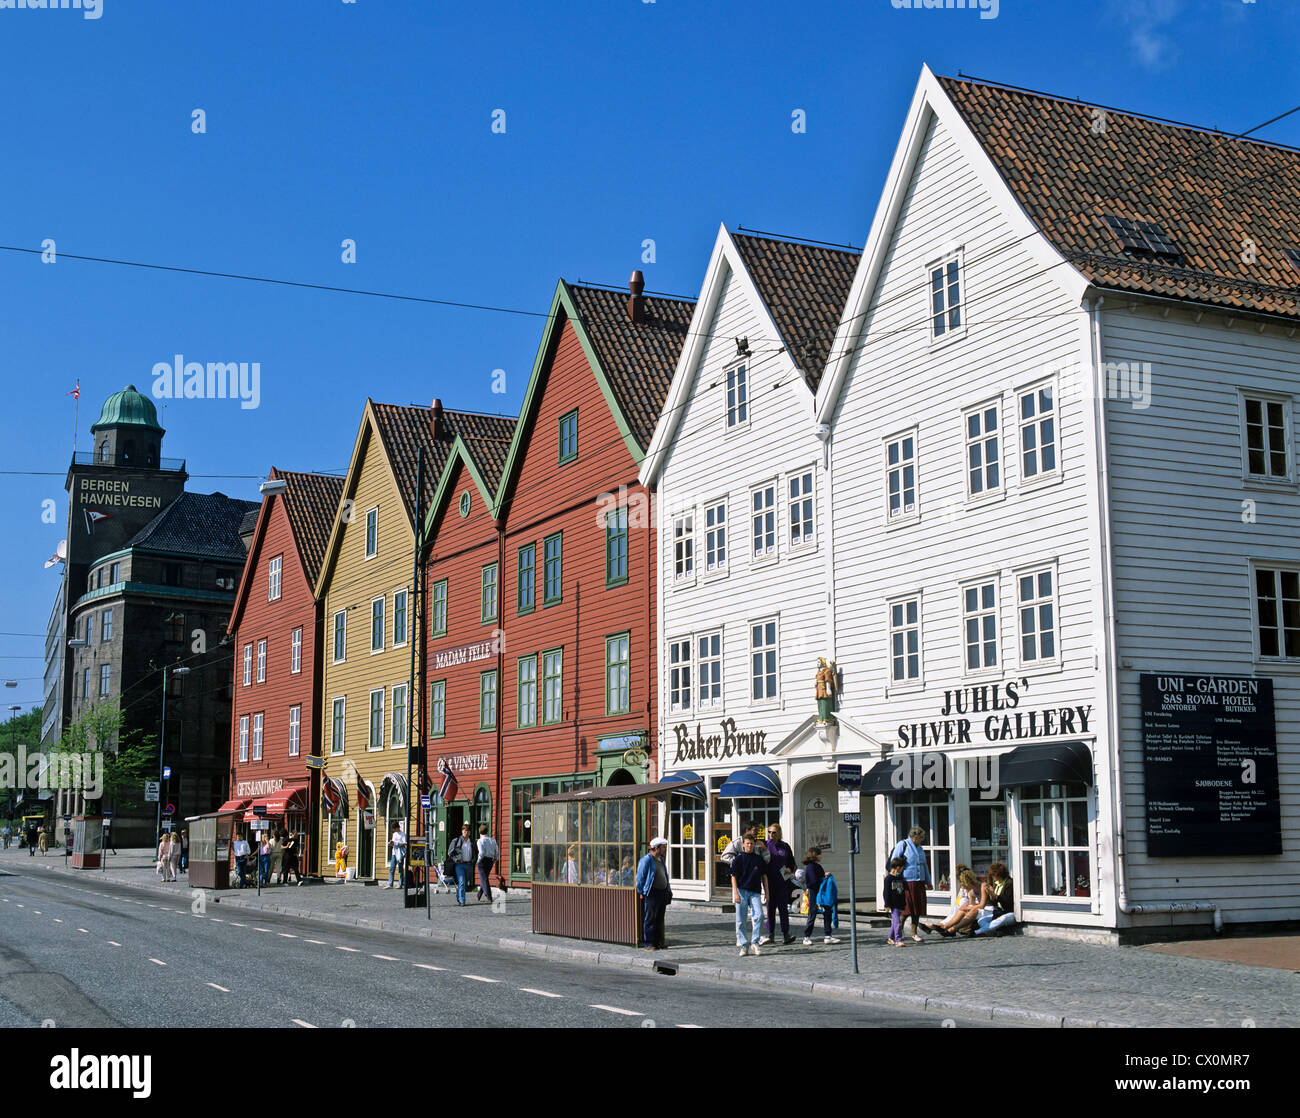 8206. Hanseatic Houses, Bergen, Norway, Europe - Stock Image